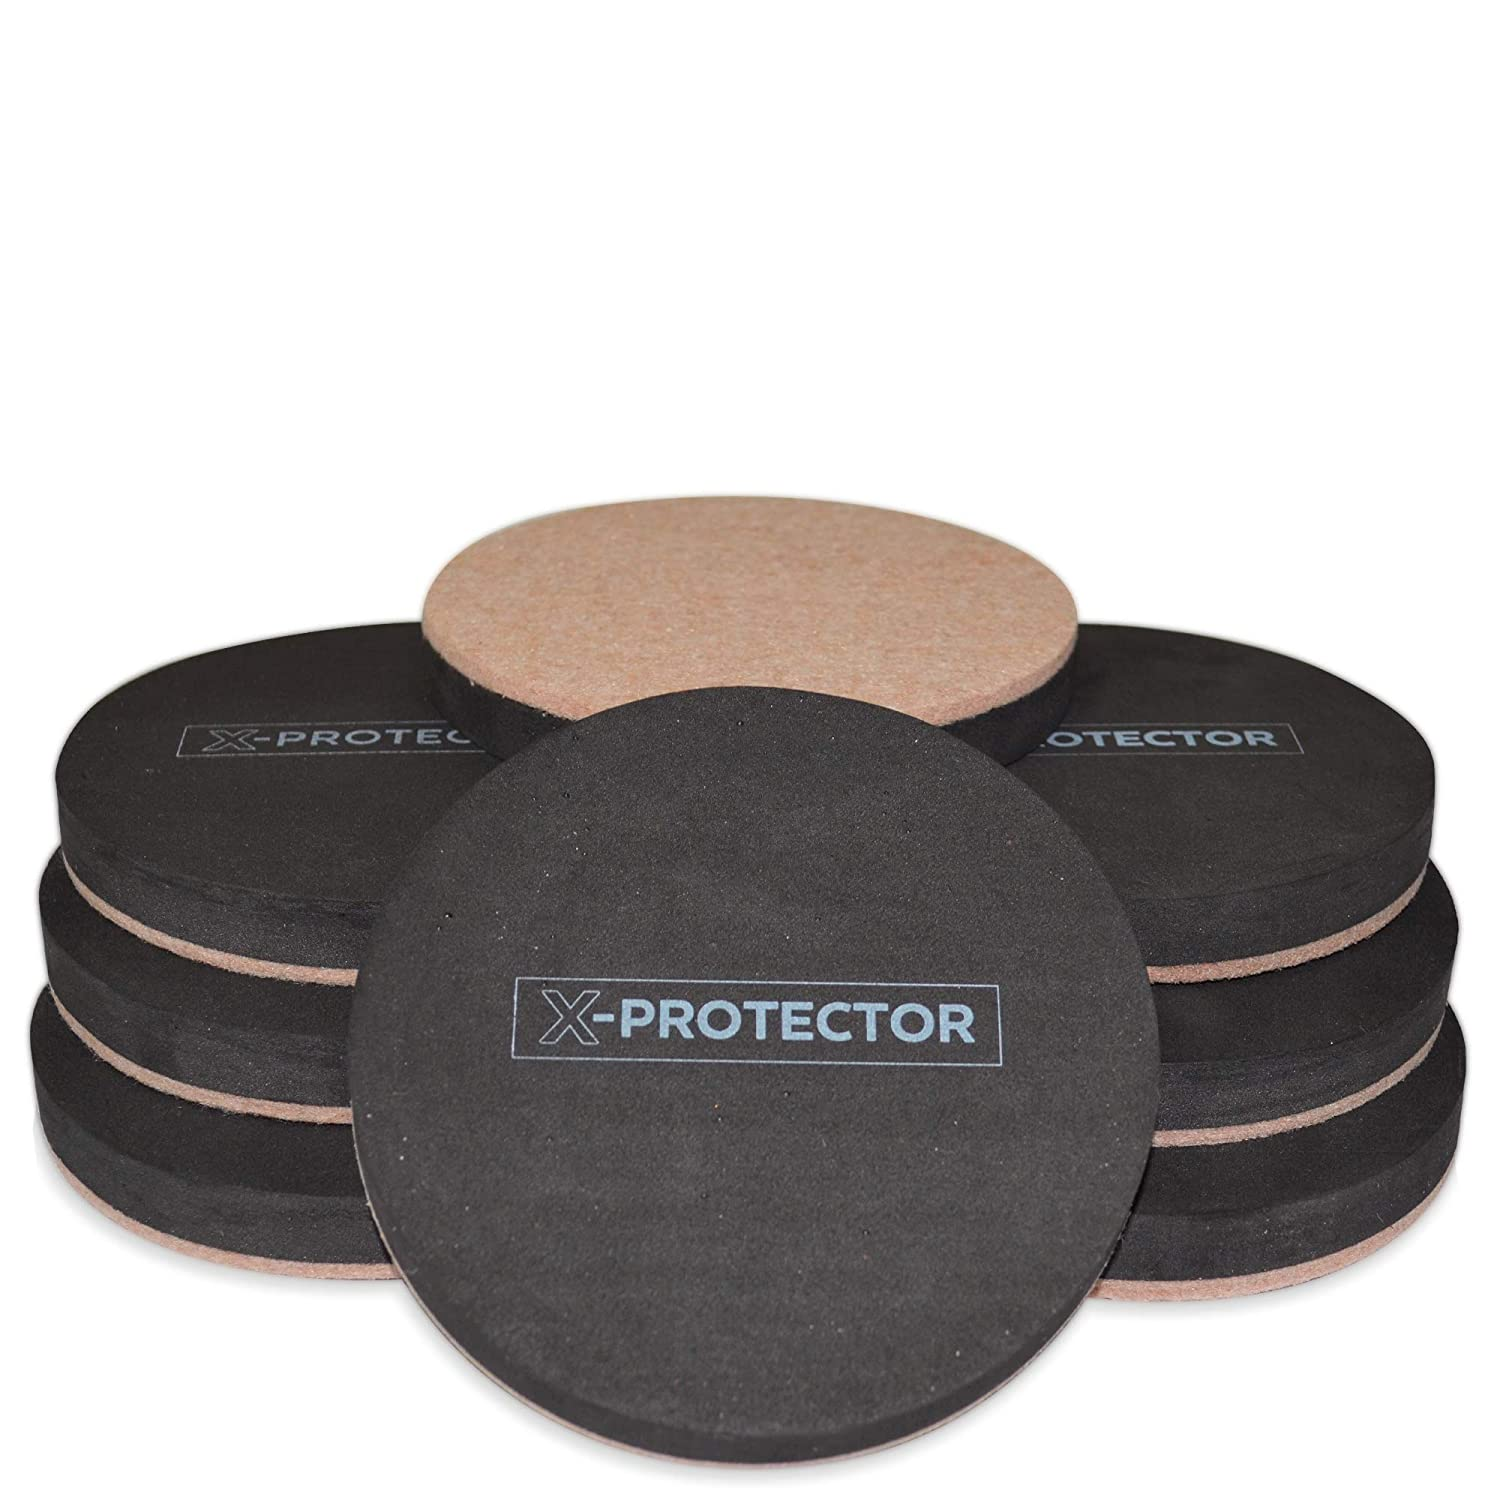 Best Floor Protectors For Pool Table Your Kitchen